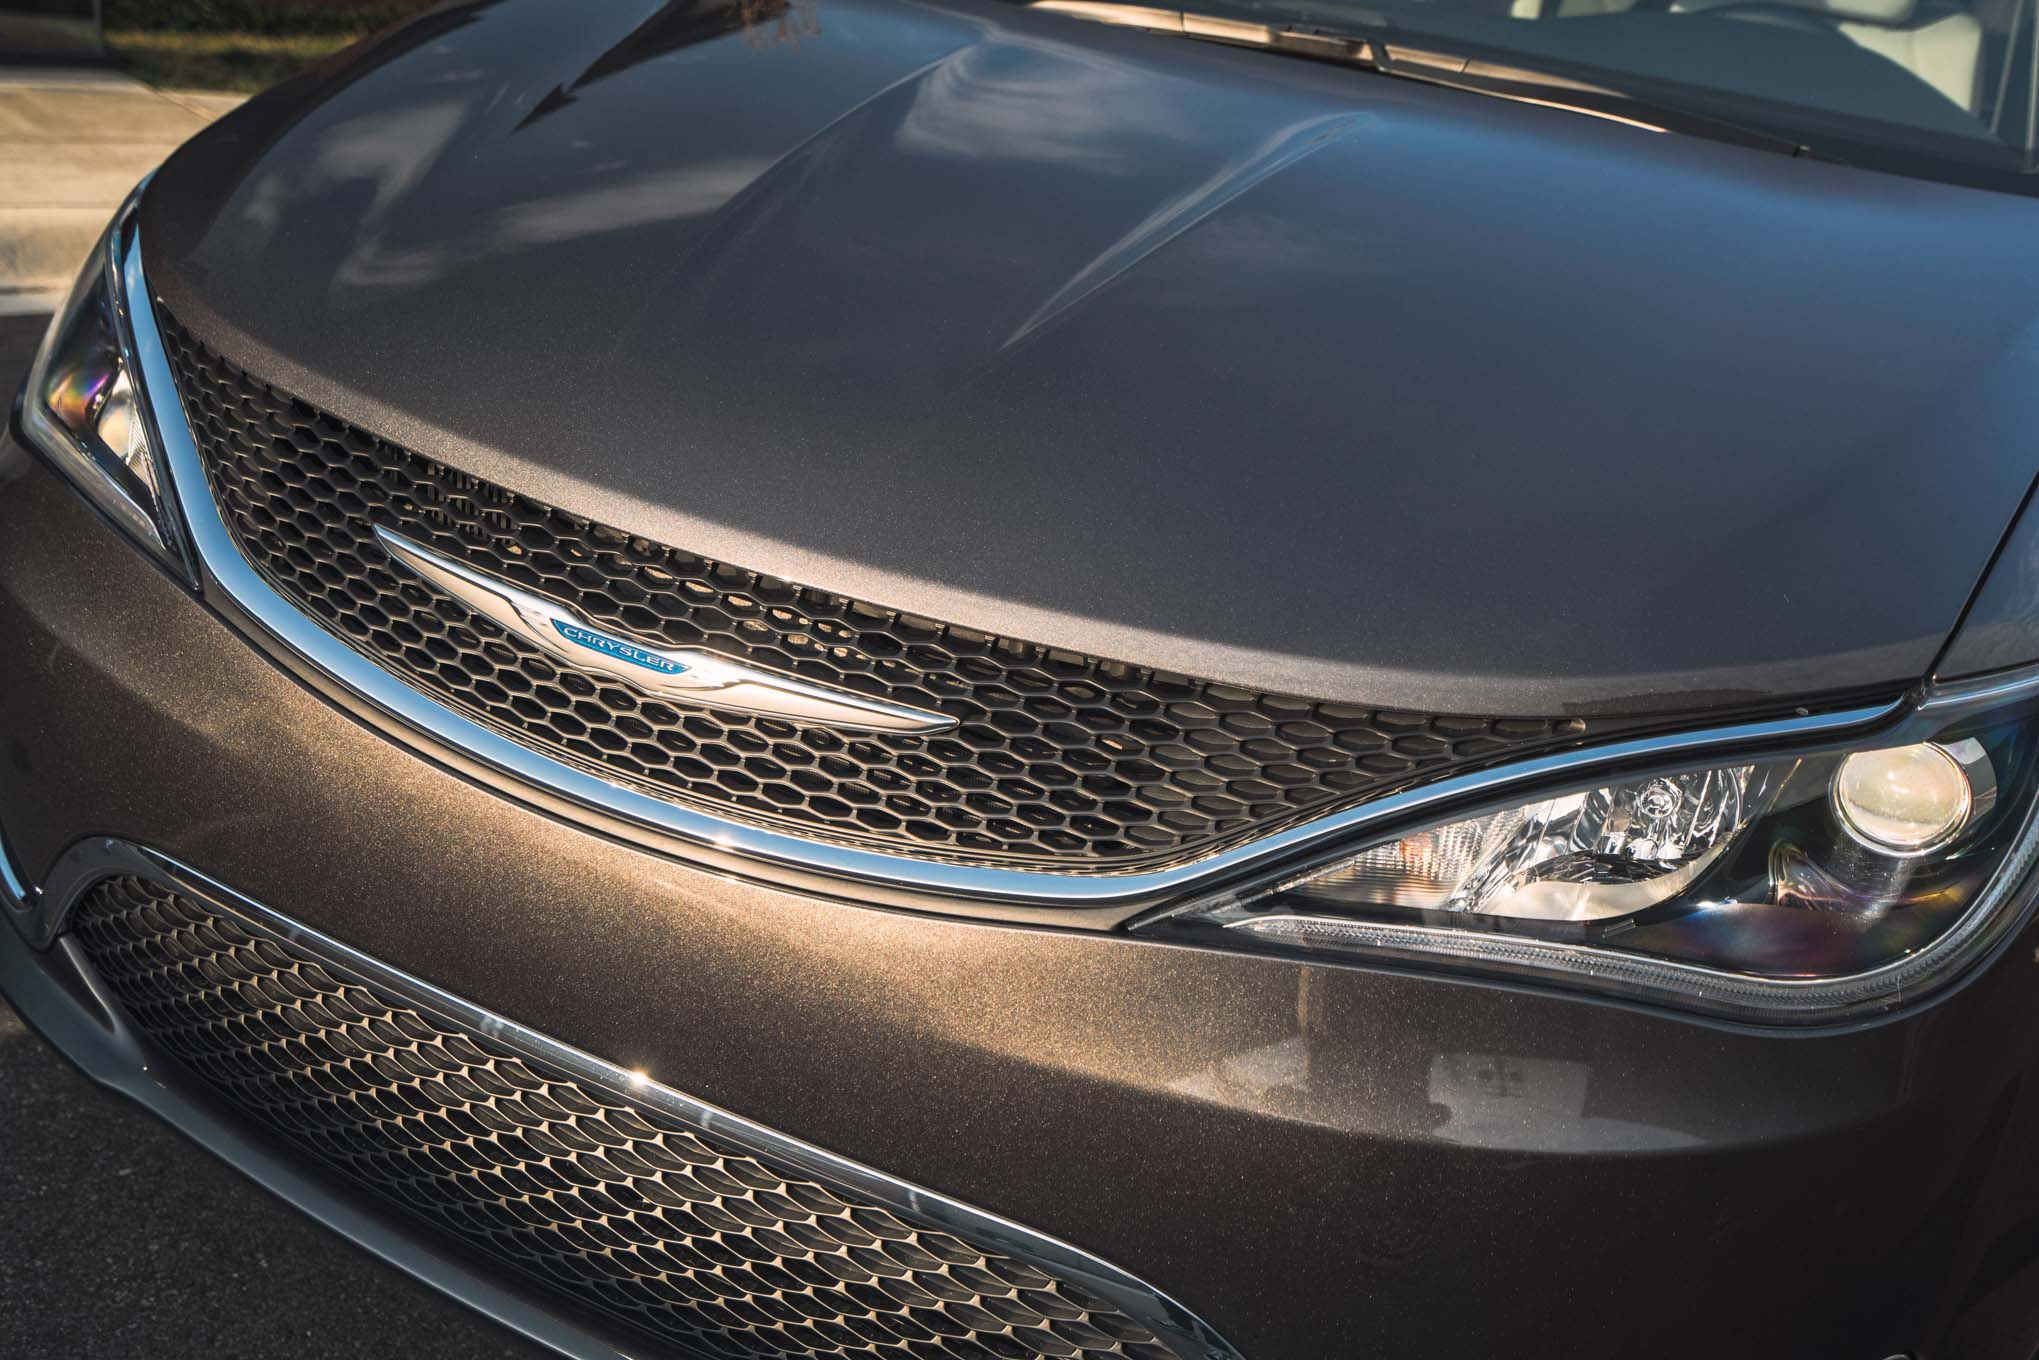 2017 Chrysler Pacifica Grille